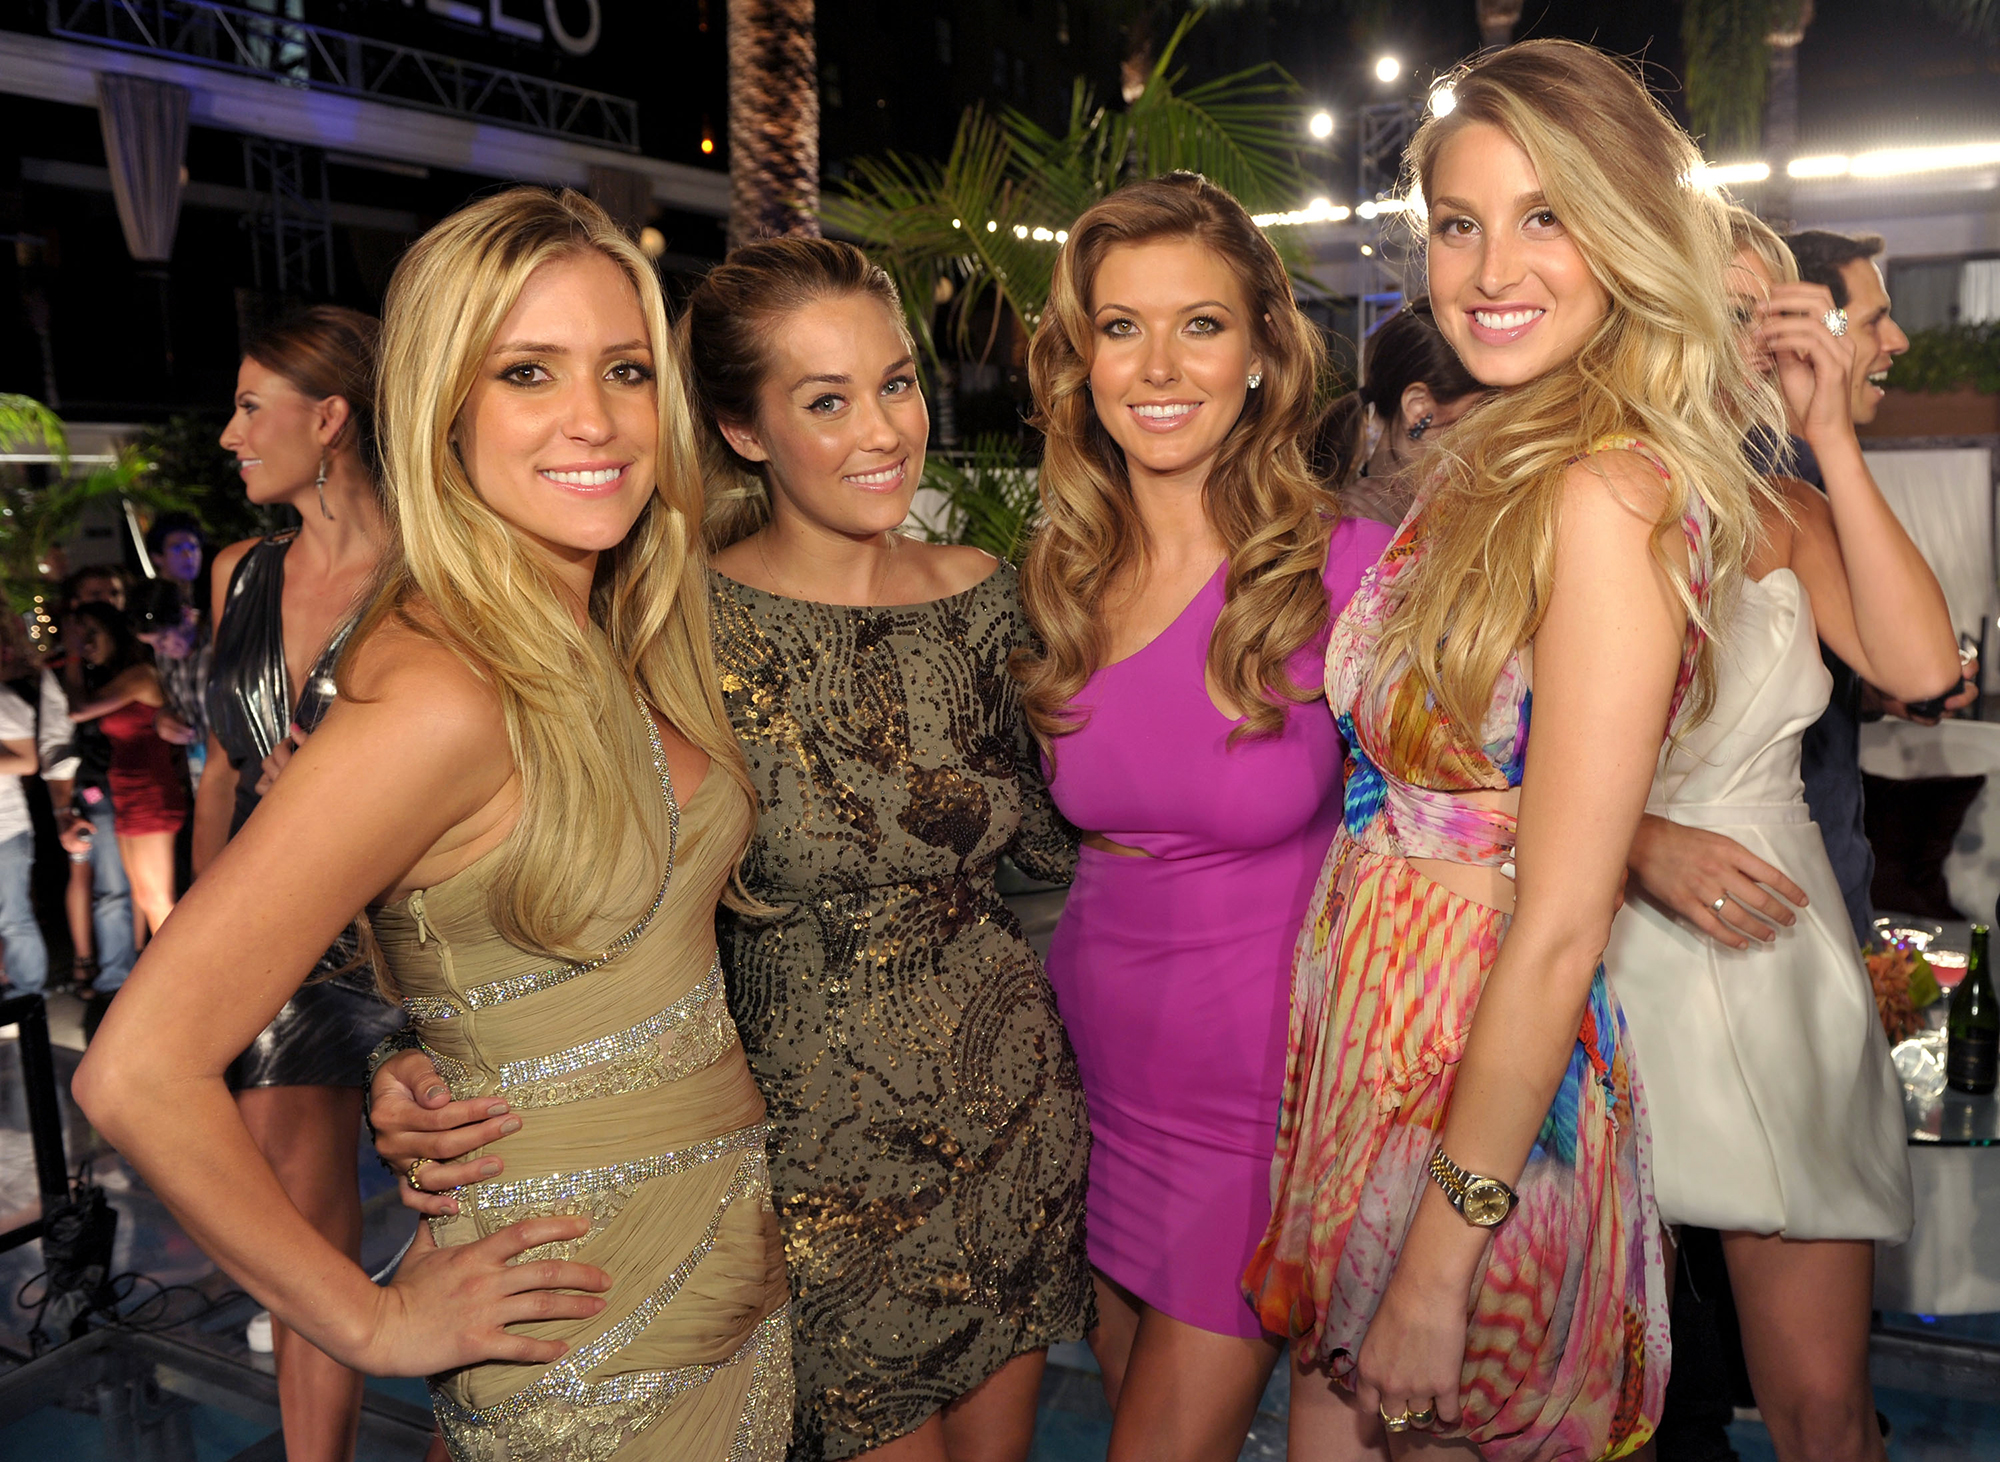 "Whitney Port and 'Hills' Costars Share Parenting Advice - Kristin Cavallari, Lauren Conrad, Audrina Patridge and Whitney Port attend MTV's ""The Hills Live: A Hollywood Ending"" Finale event held at The Roosevelt Hotel on July 13, 2010 in Hollywood, California."